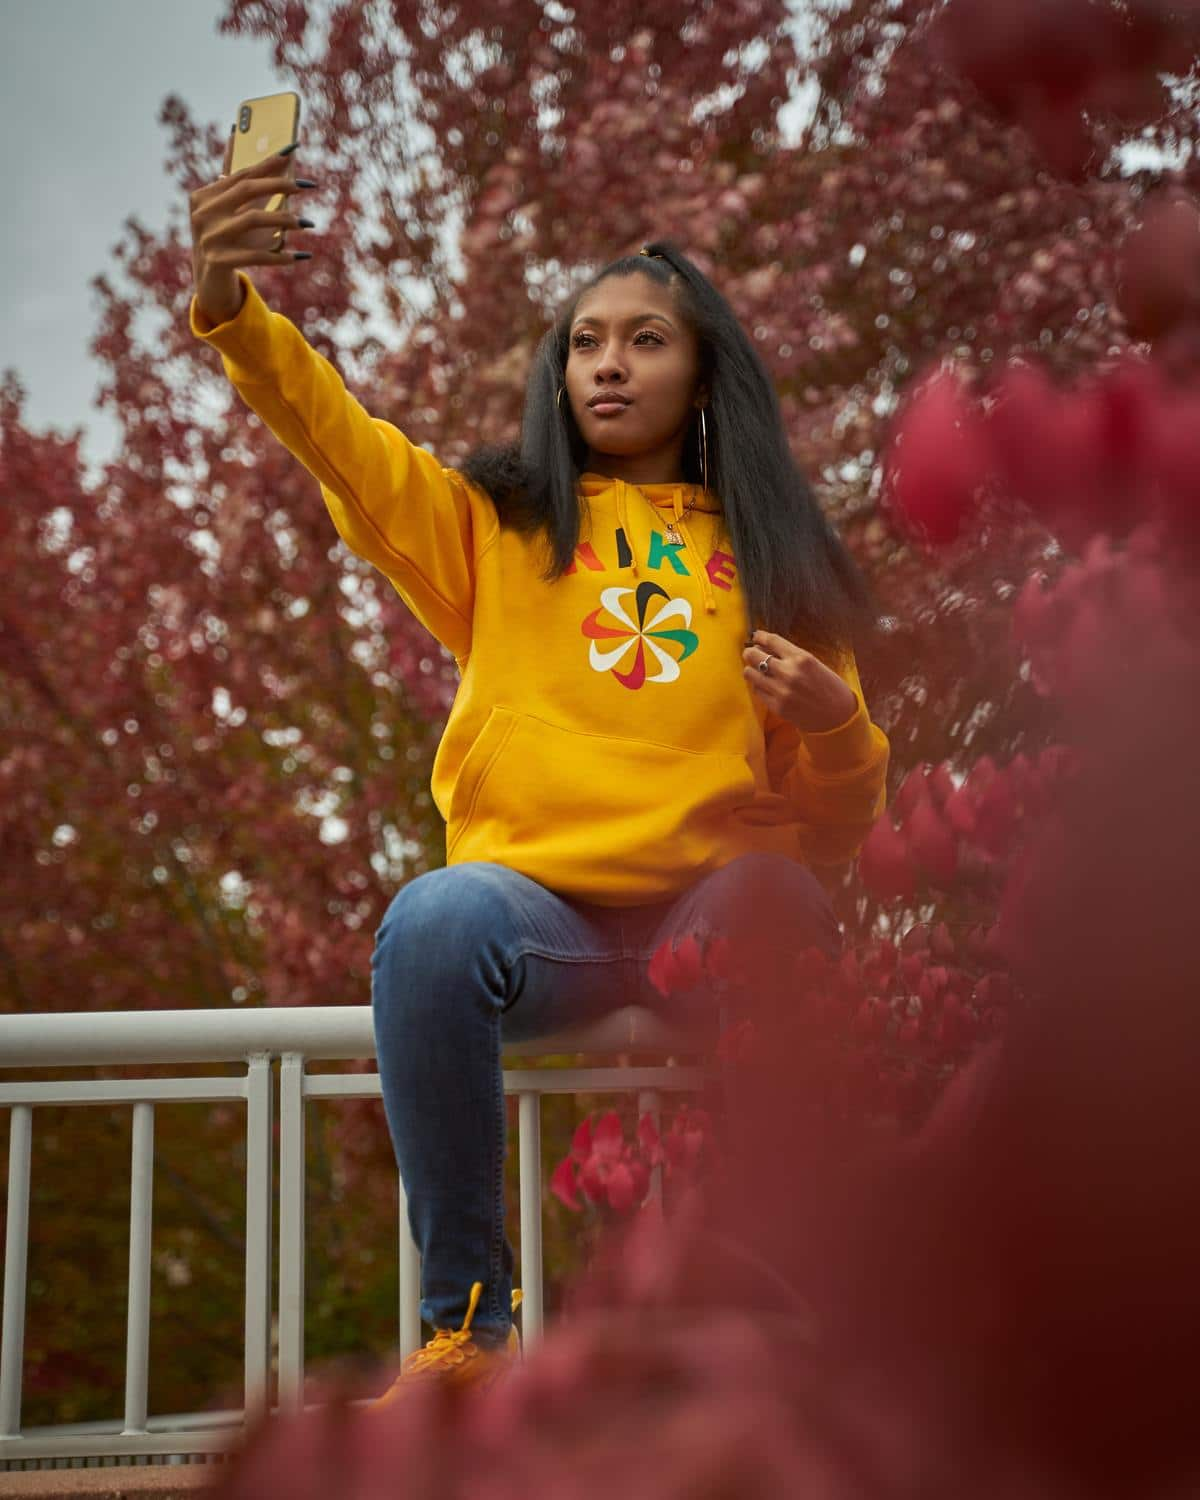 Woman in a Yellow Sweatshirt Sitting on a Fence Looking Good 'AF'